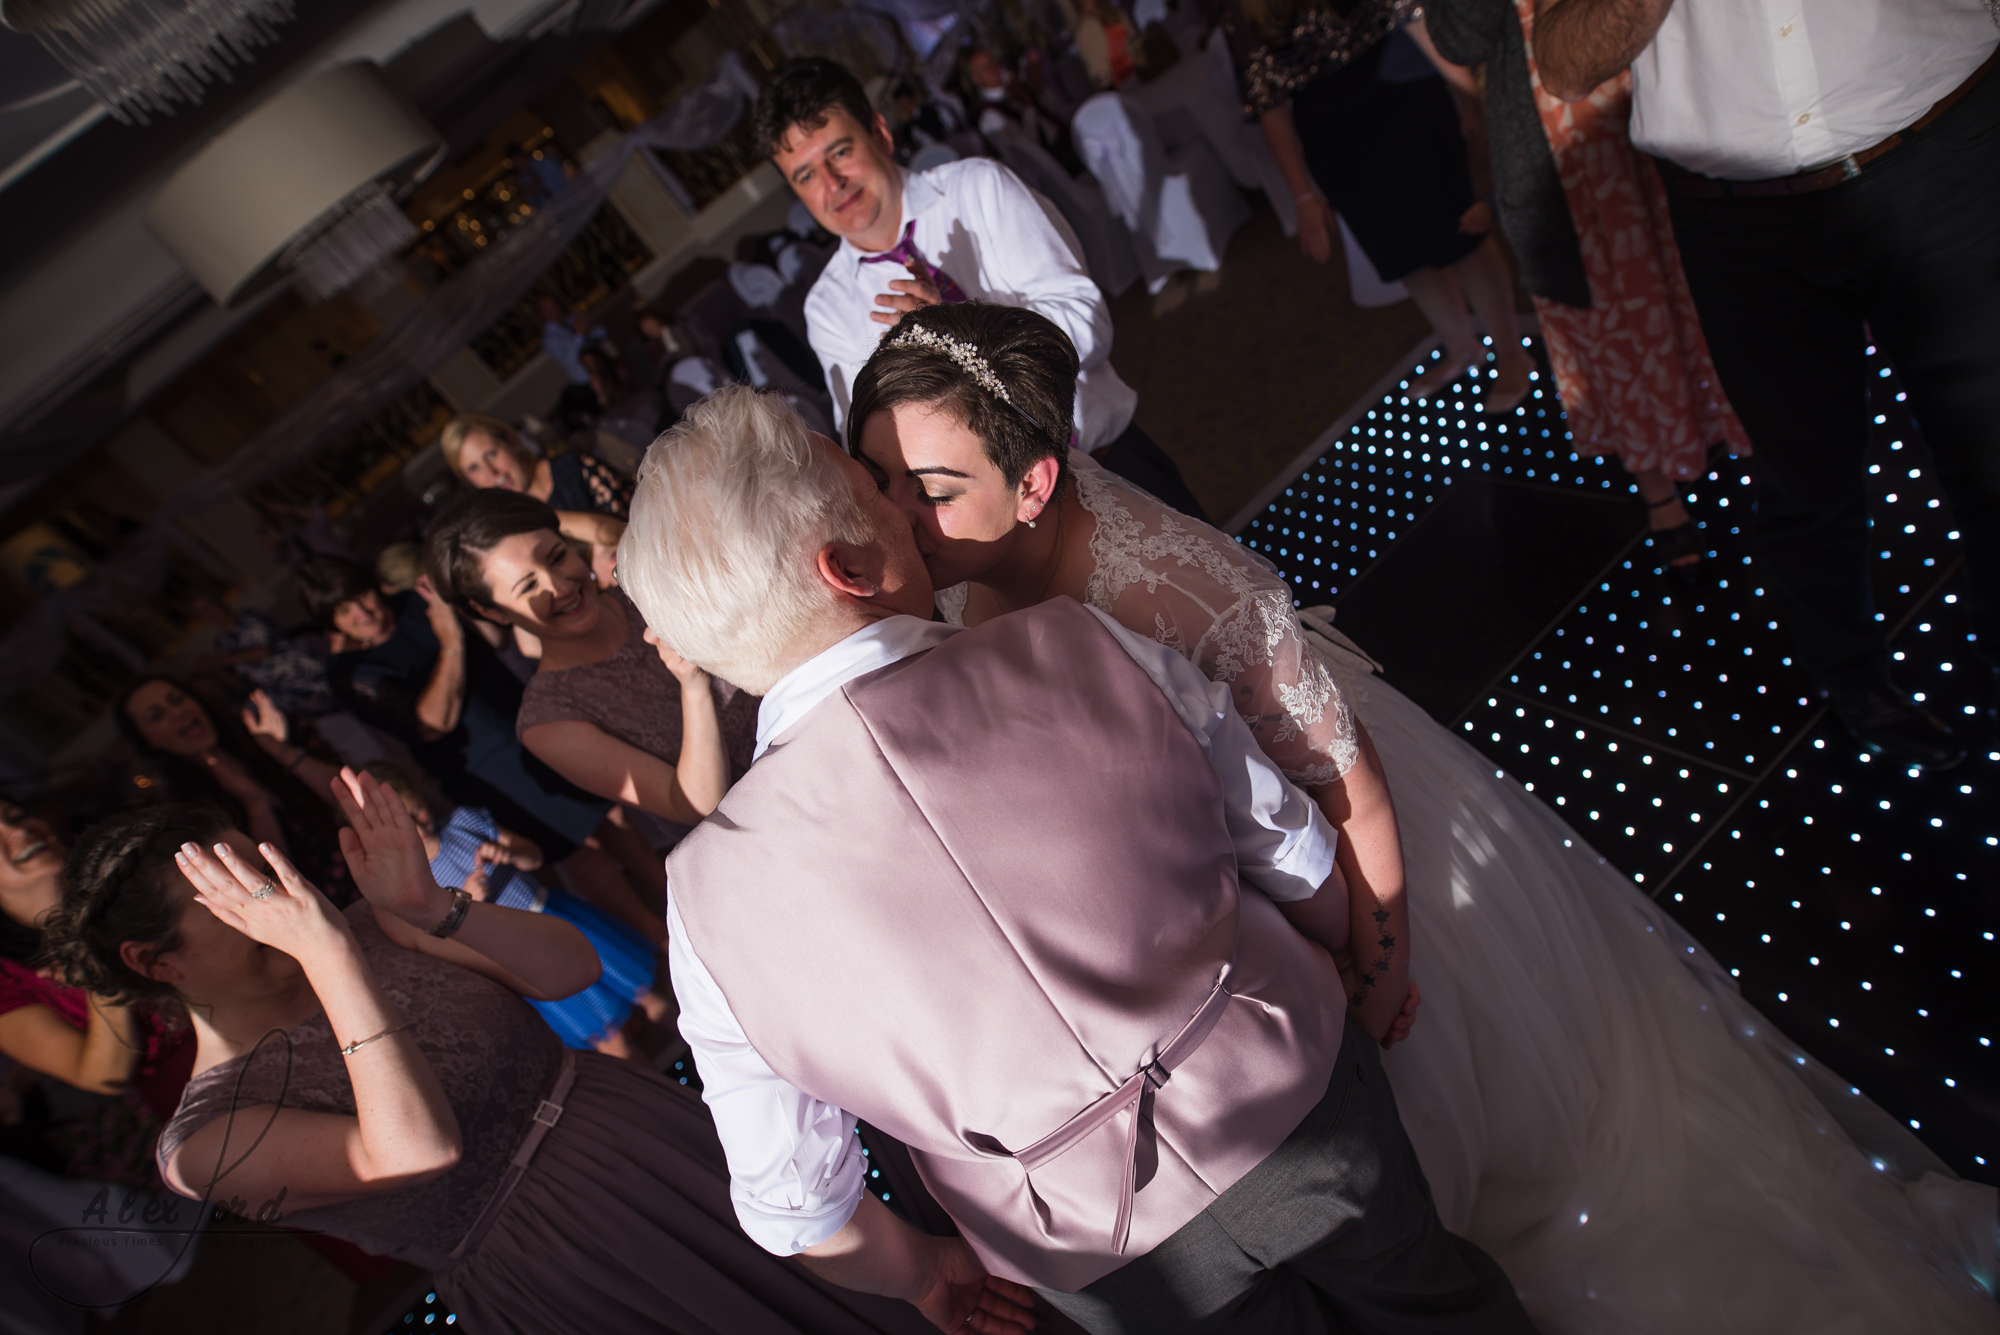 the bride and bride have their first dance together